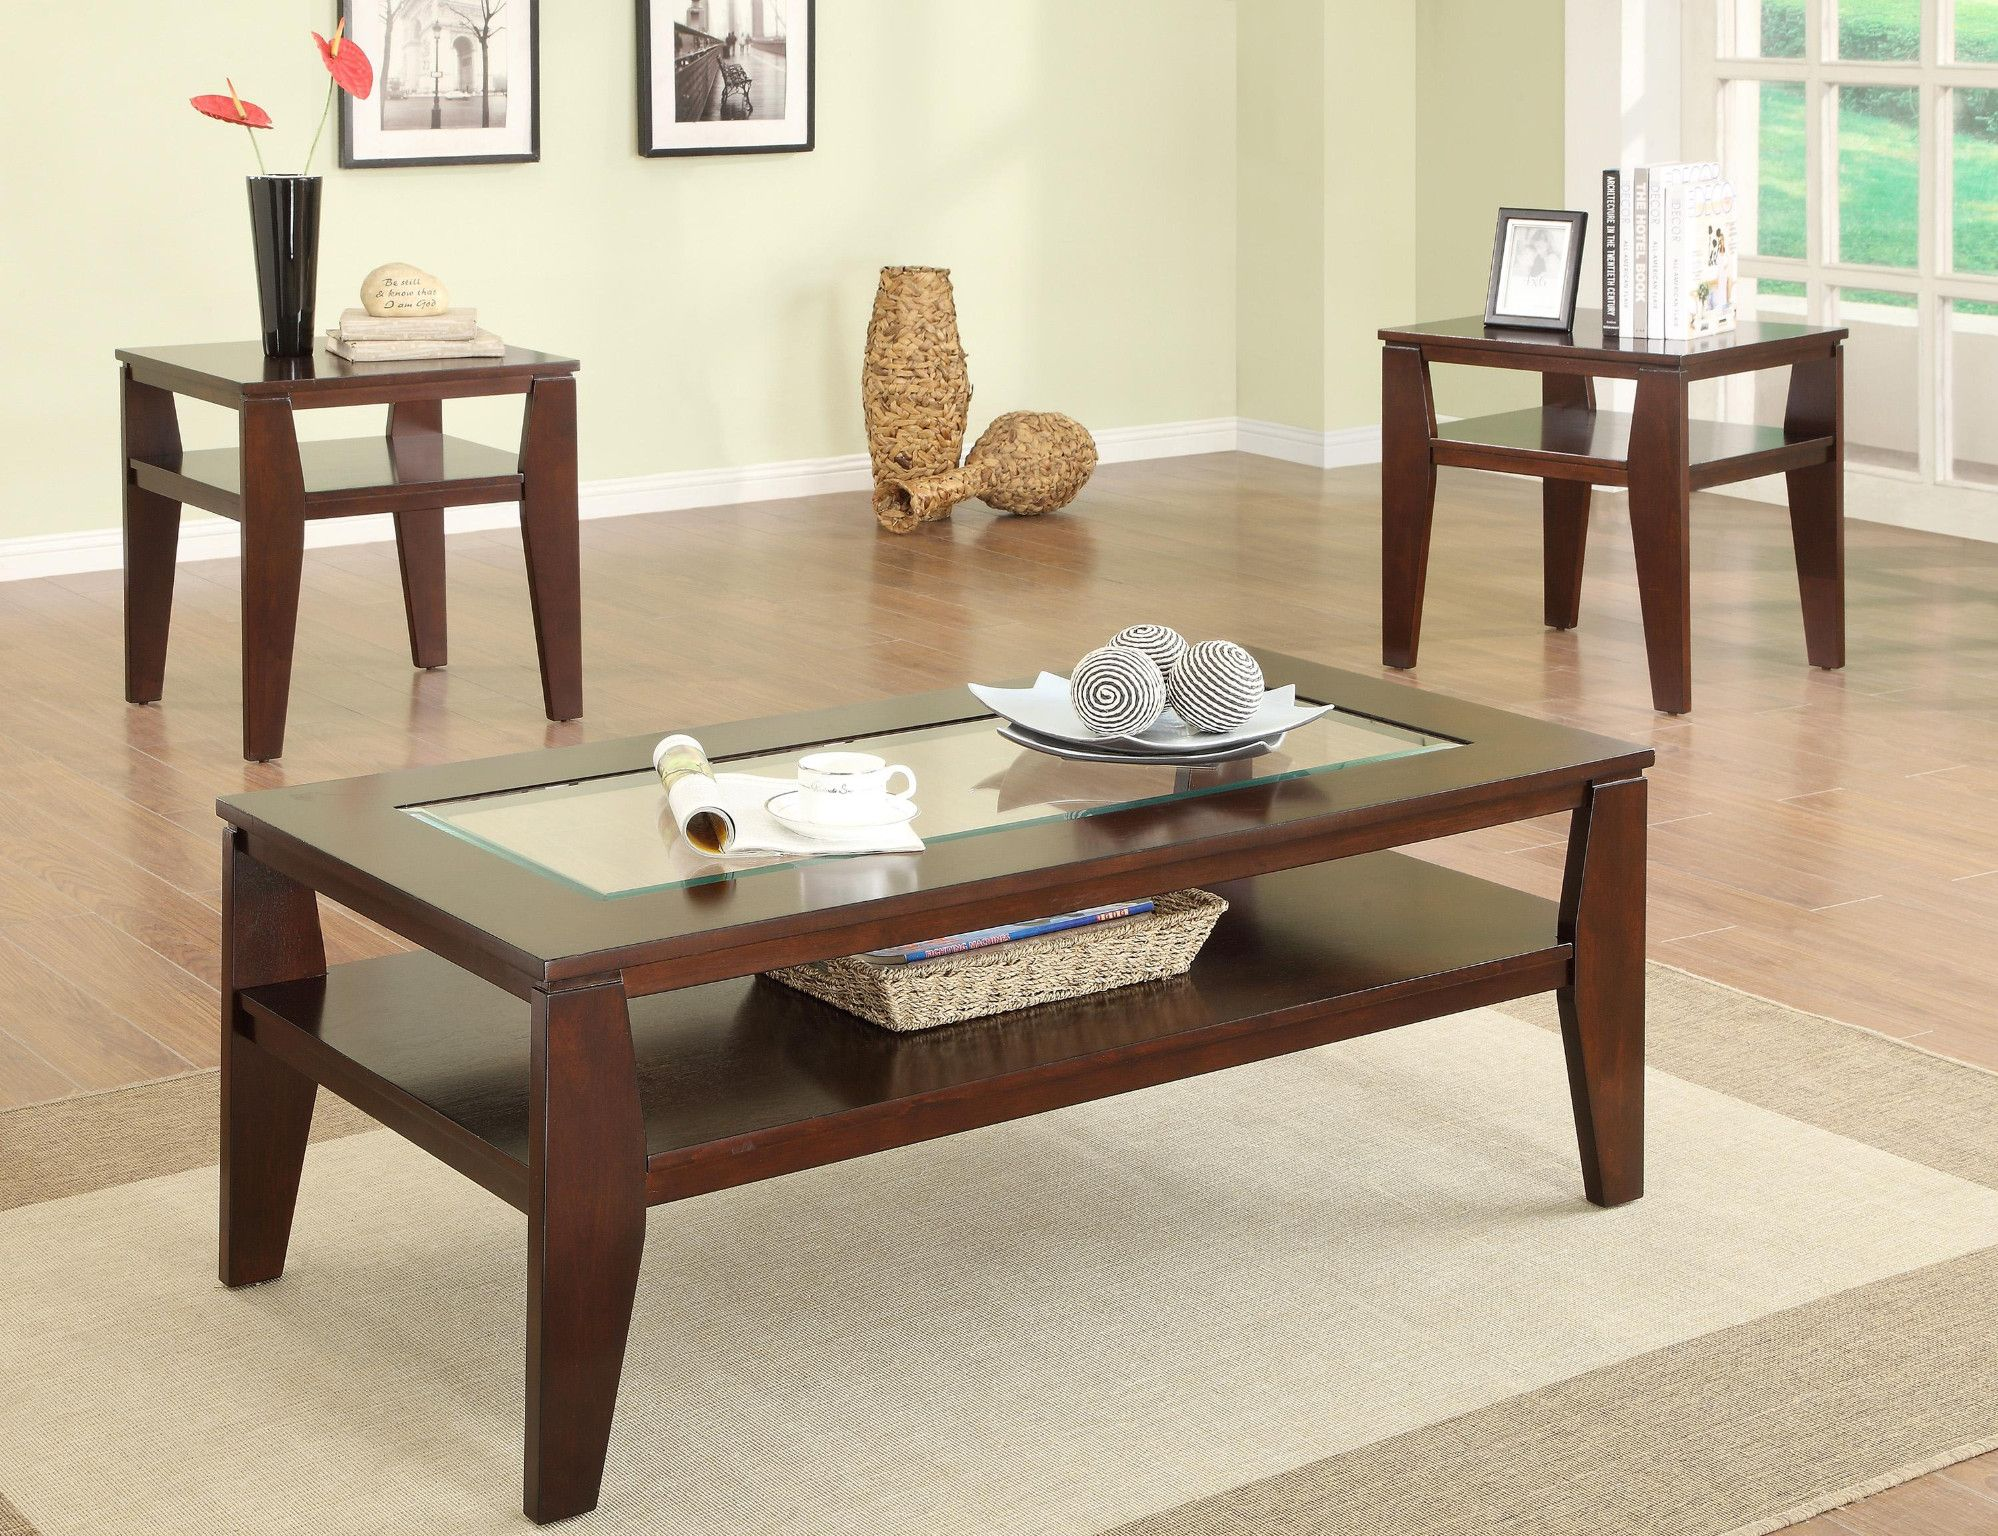 Scott 3 Piece Table Set Coffee And 2 End Tables 299 00 Coffee Table With Glass Insert 48 X Coffee Table 3 Piece Coffee Table Set Coffee Table Setting [ 1536 x 1998 Pixel ]